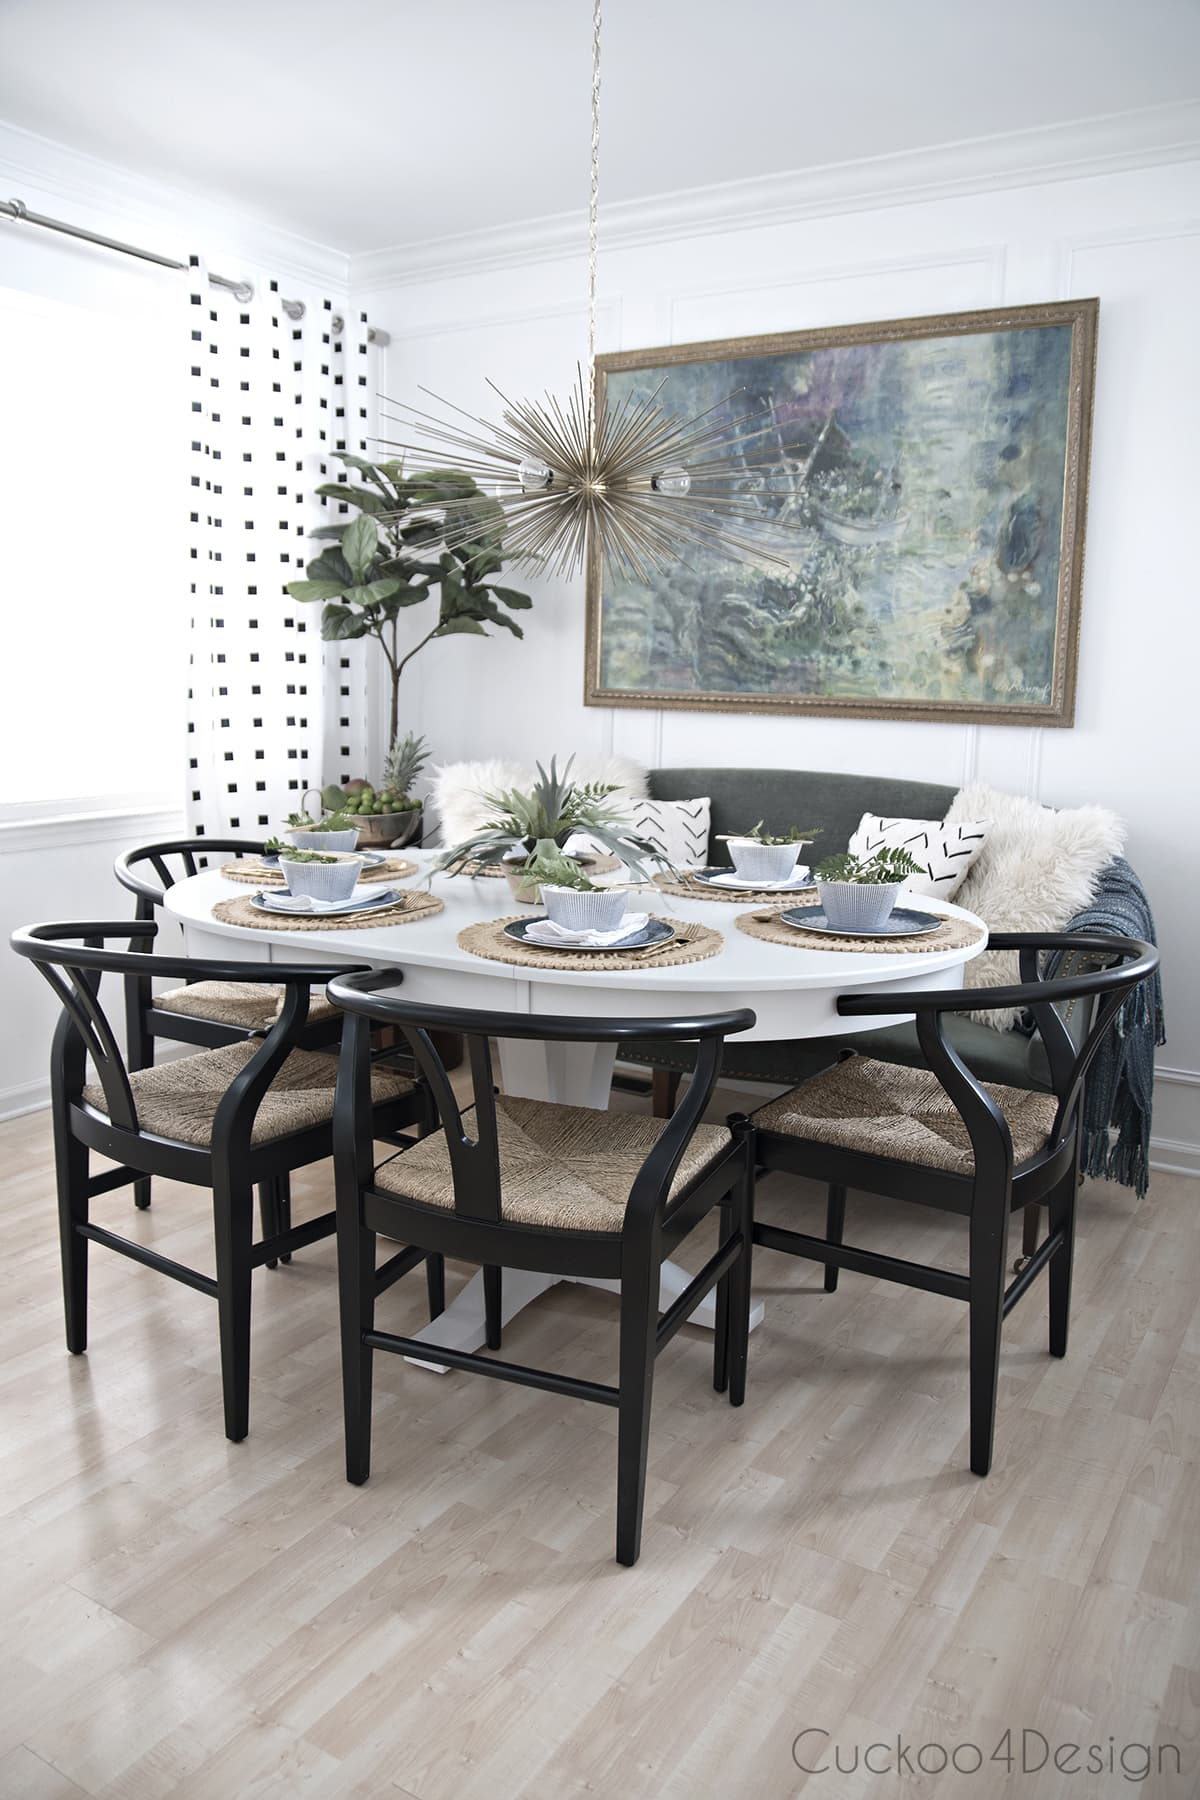 seating 7 around white pedestal table